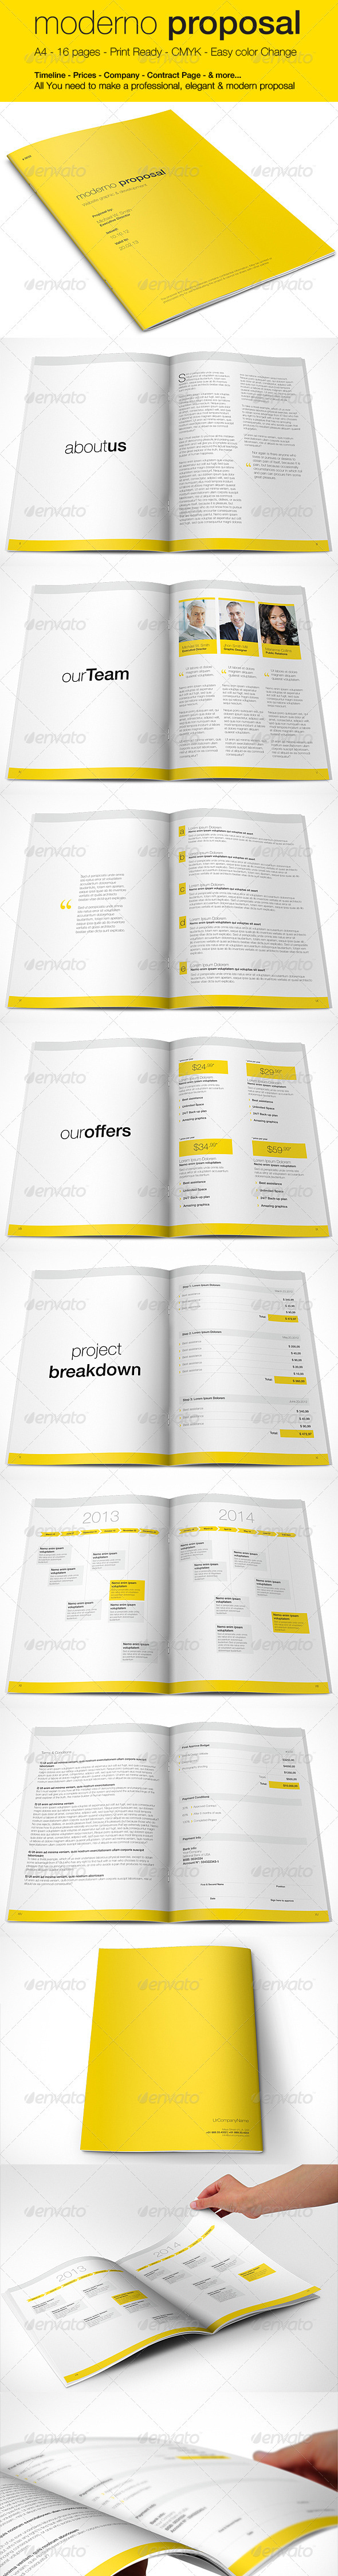 Moderno Project Proposal | Multipurpose Template - Proposals & Invoices Stationery